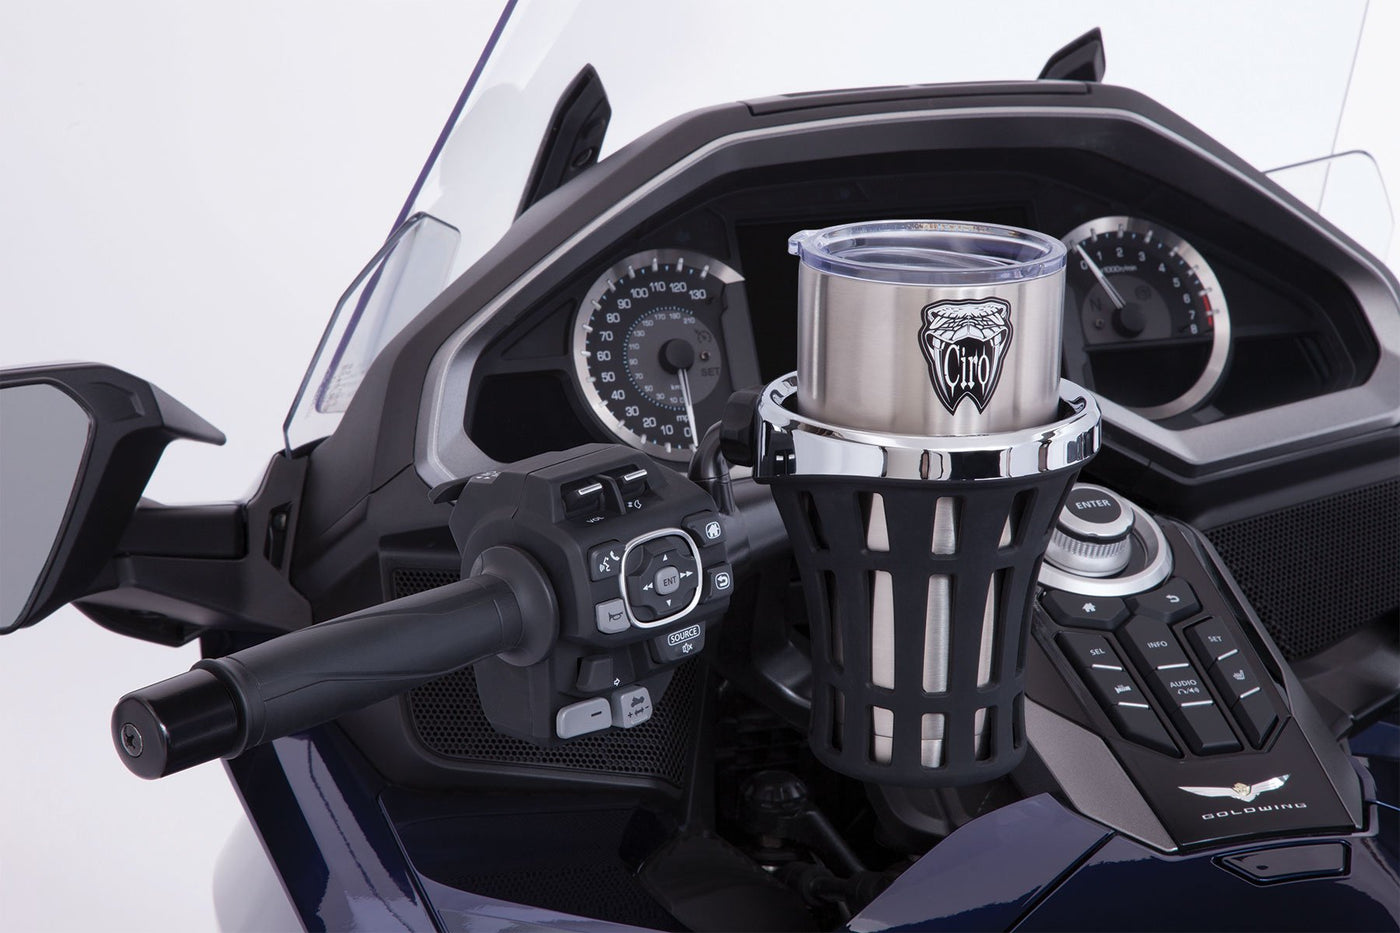 Drink Holder for Goldwing